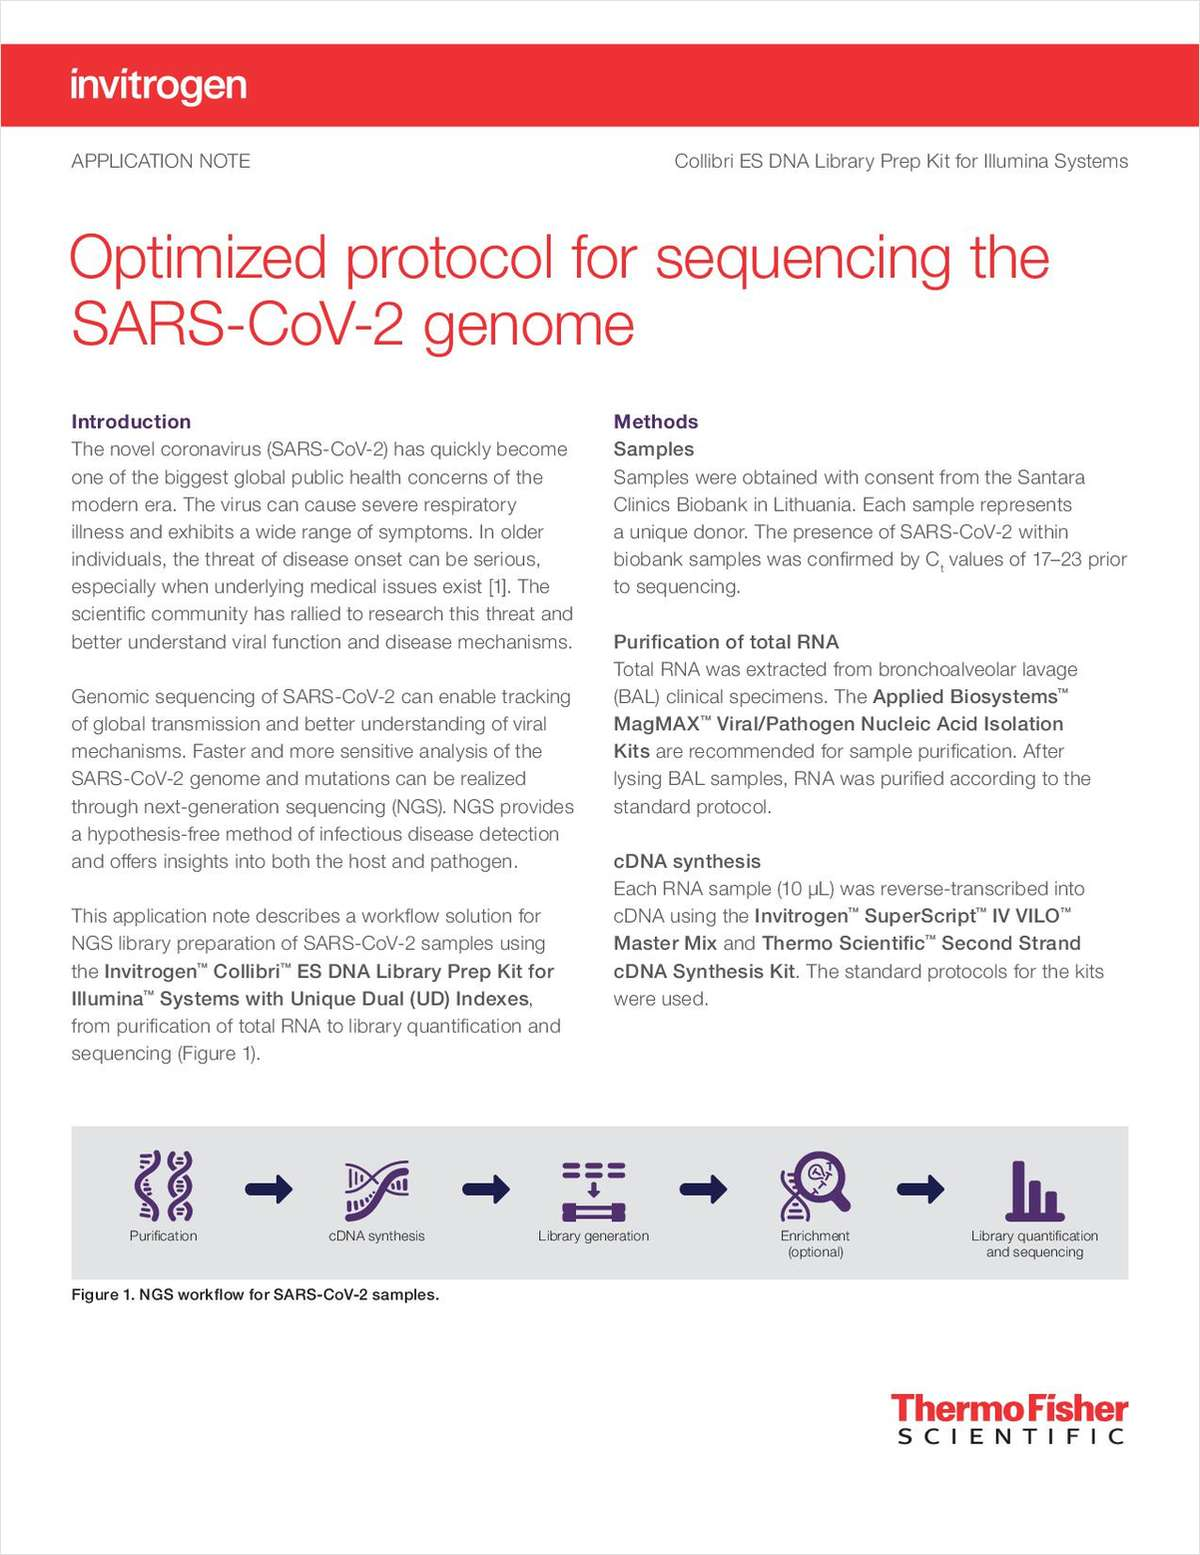 Application Note: Optimized Protocol for Sequencing the SARS-CoV-2 Genome